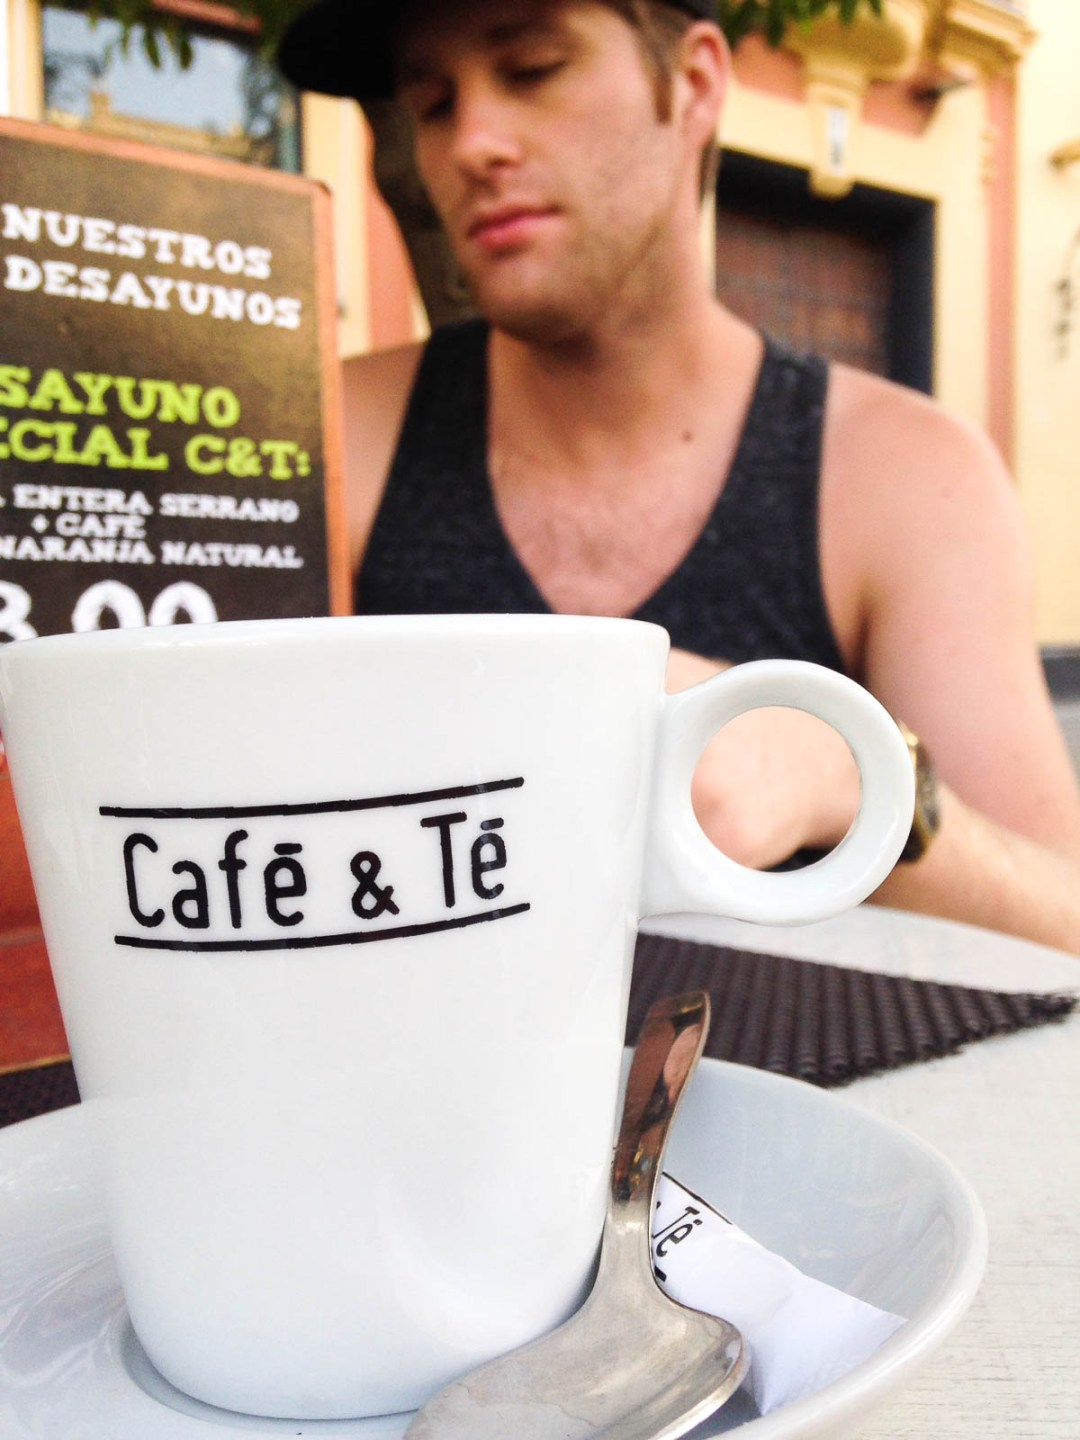 Close-up of a coffee mug with a man in the background